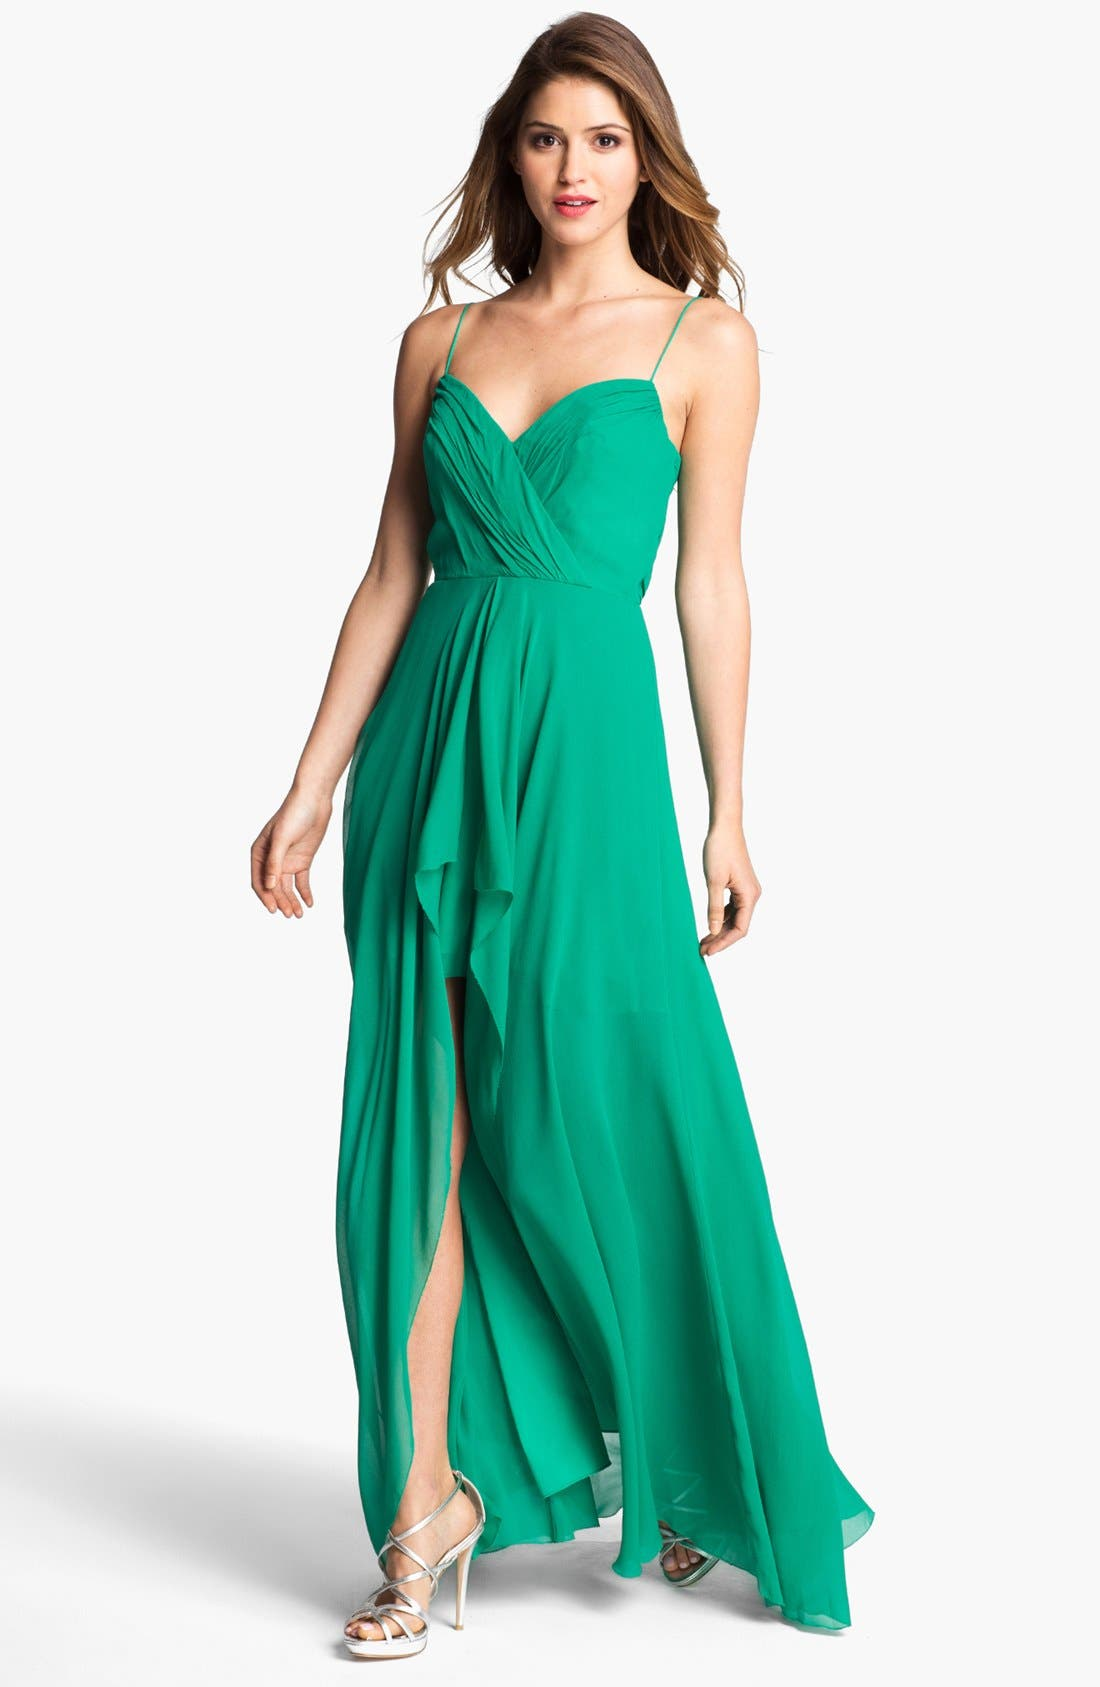 Alternate Image 1 Selected - Nicole Miller Draped High/Low Chiffon Dress